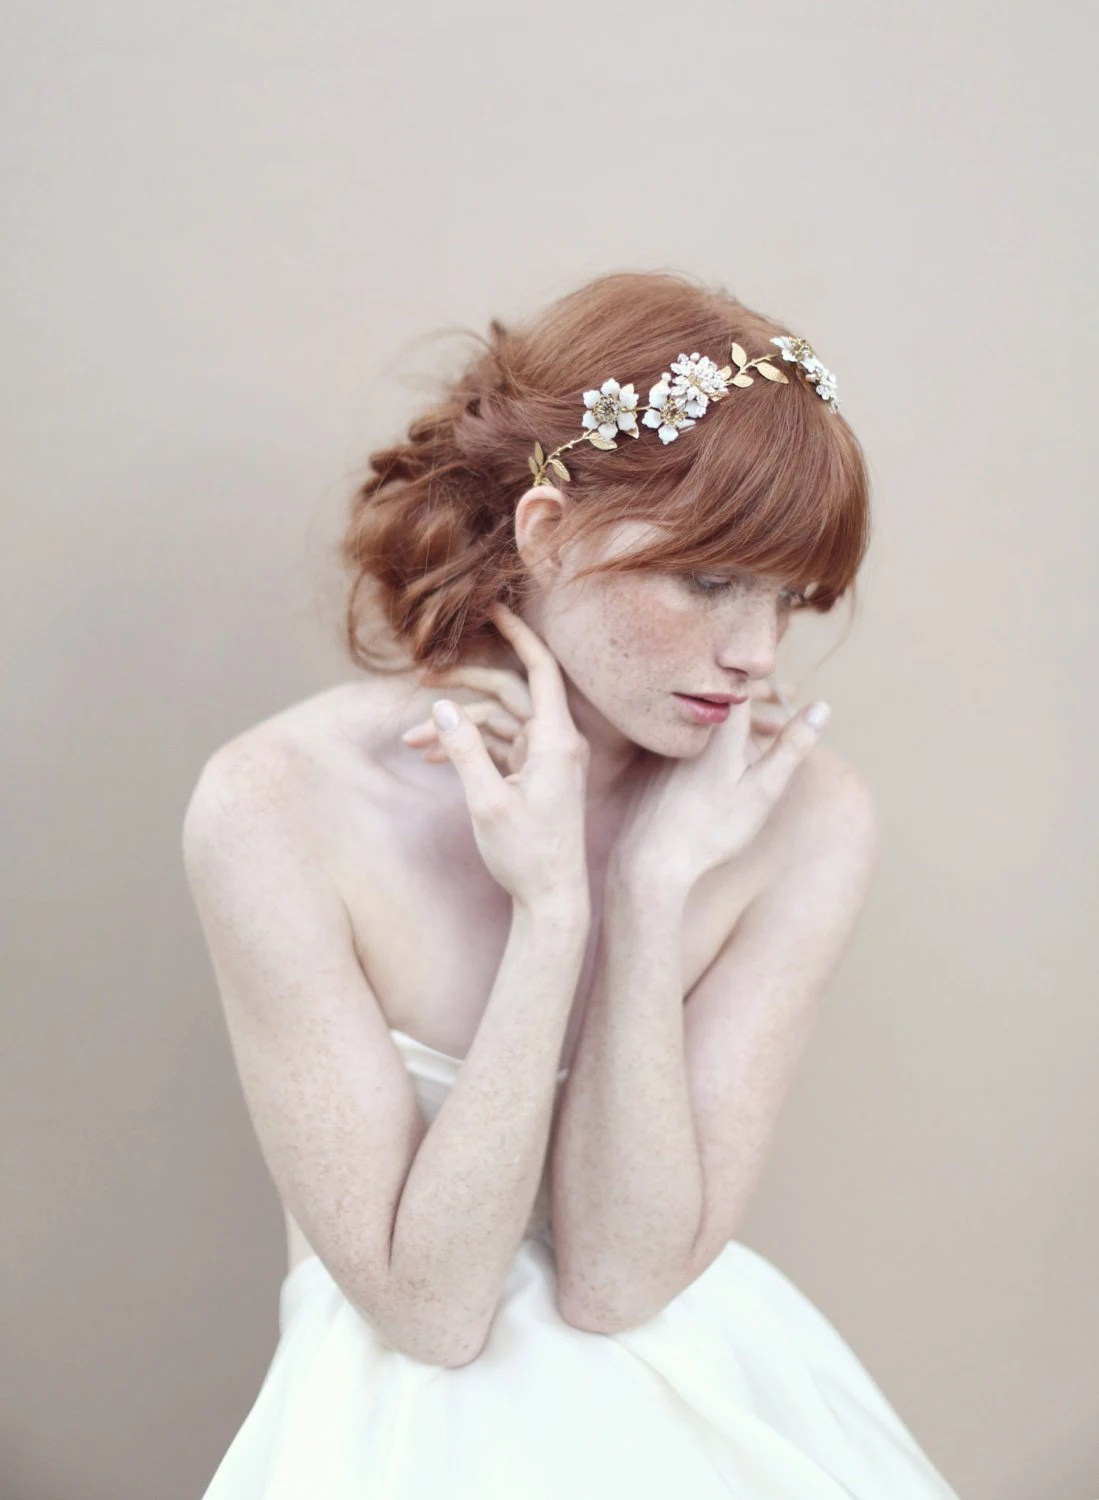 Bridal hair vine, beaded flowers, headpiece - Pearl and crystal blossom twig headpiece - Style 354